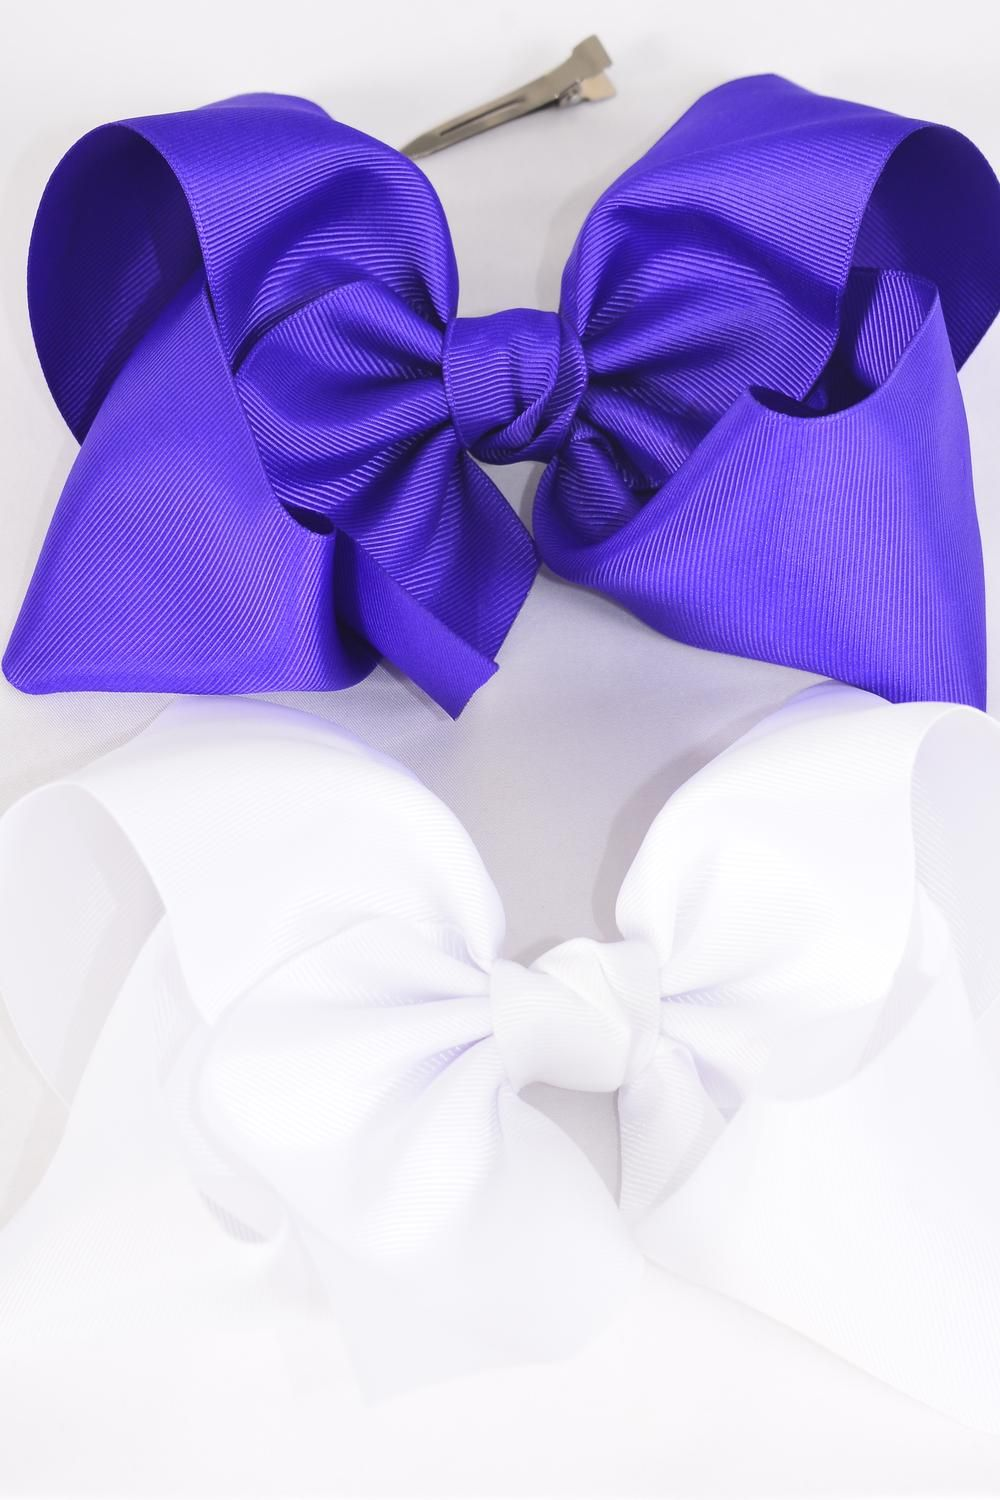 "Hair Bow Cheer Type Bow Purple & White Mix Grosgrain Bow-tie/DZ **Purple & White Mix** Alligator Clip,Size-8""x 7"" Wide,6 of each Color Asst,Clip Strip & UPC Code"